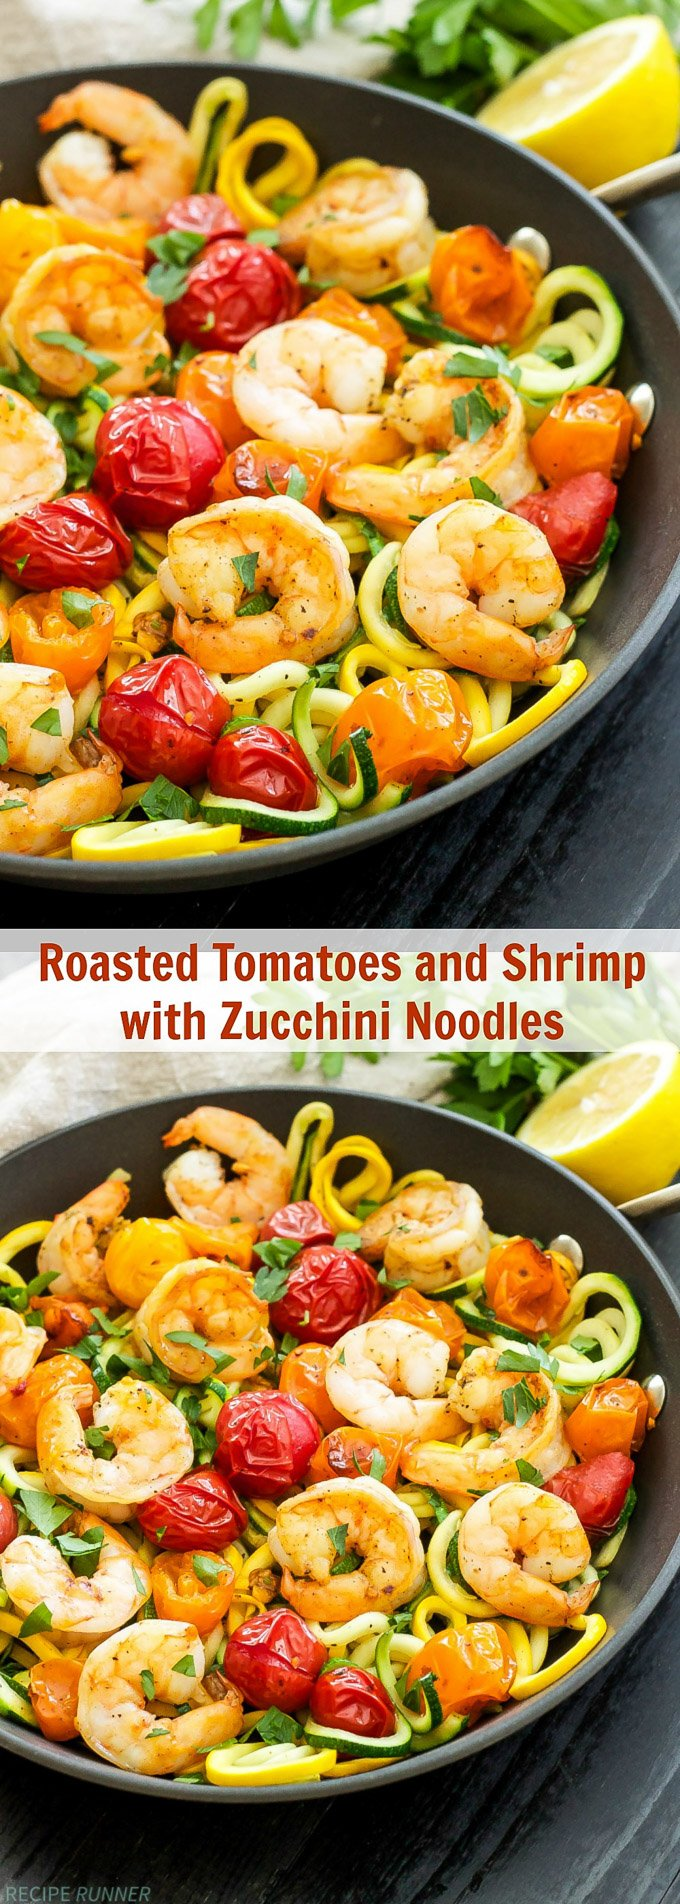 Roasted Tomatoes with Shrimp and Zucchini Noodles   One of my favorite, easy to make dinners! Simple ingredients, gluten-free, Paleo and Whole30 compliant!